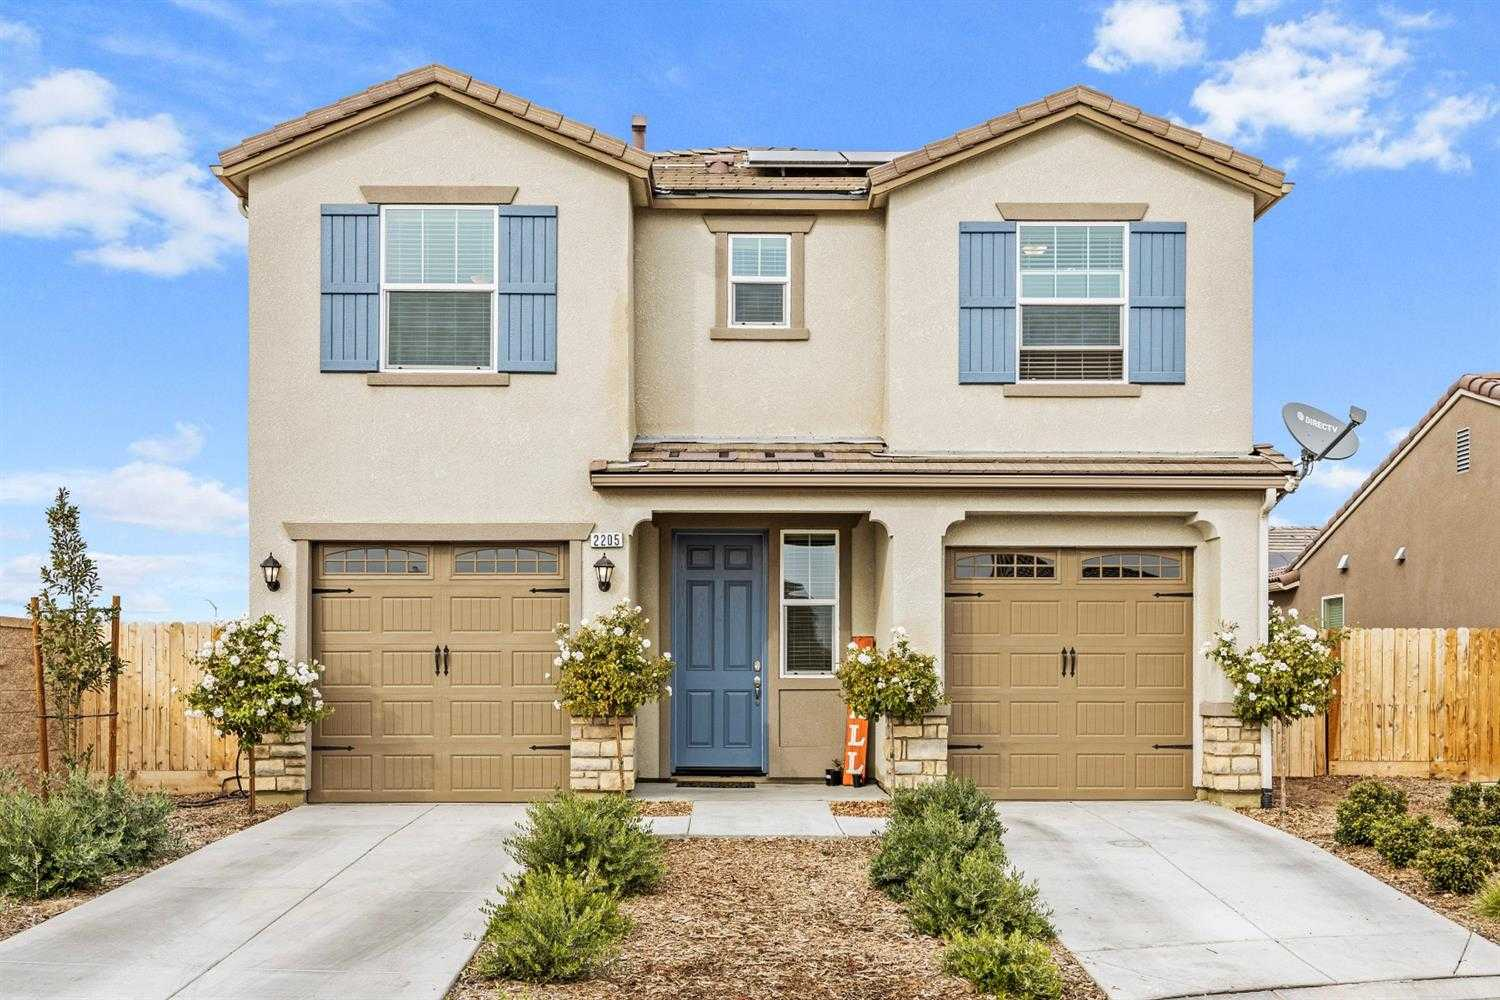 $375,000 - 4Br/3Ba -  for Sale in Clovis